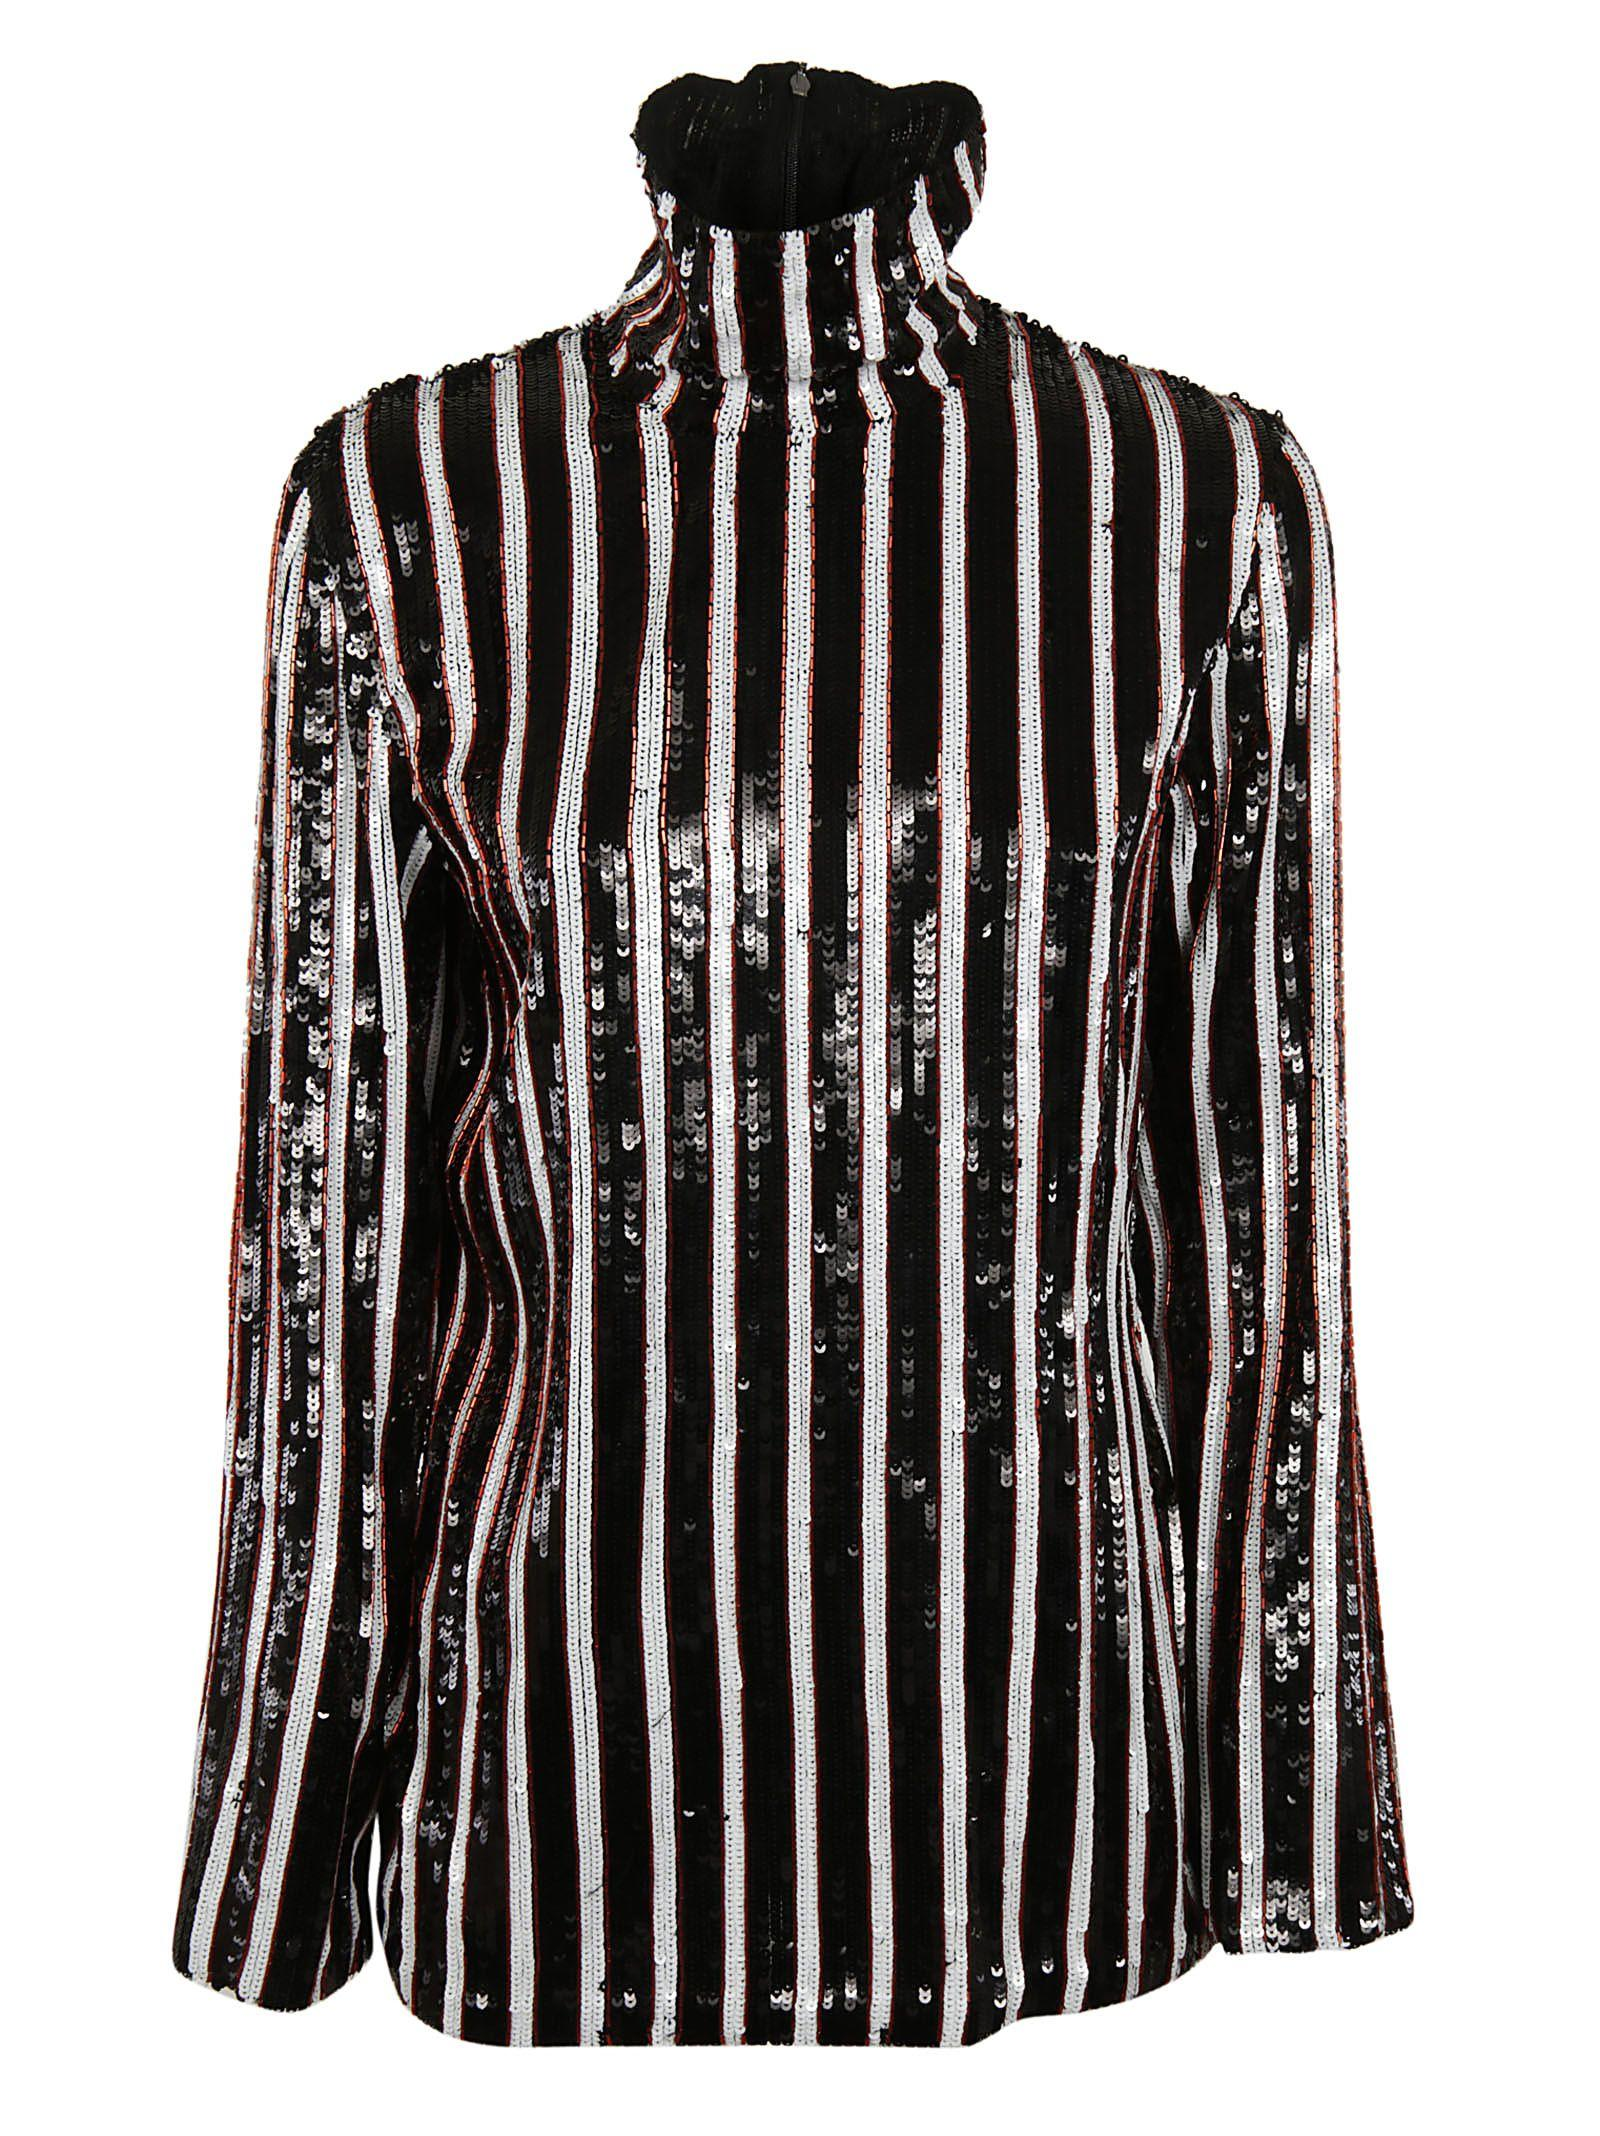 Msgm Stripe Top In Black